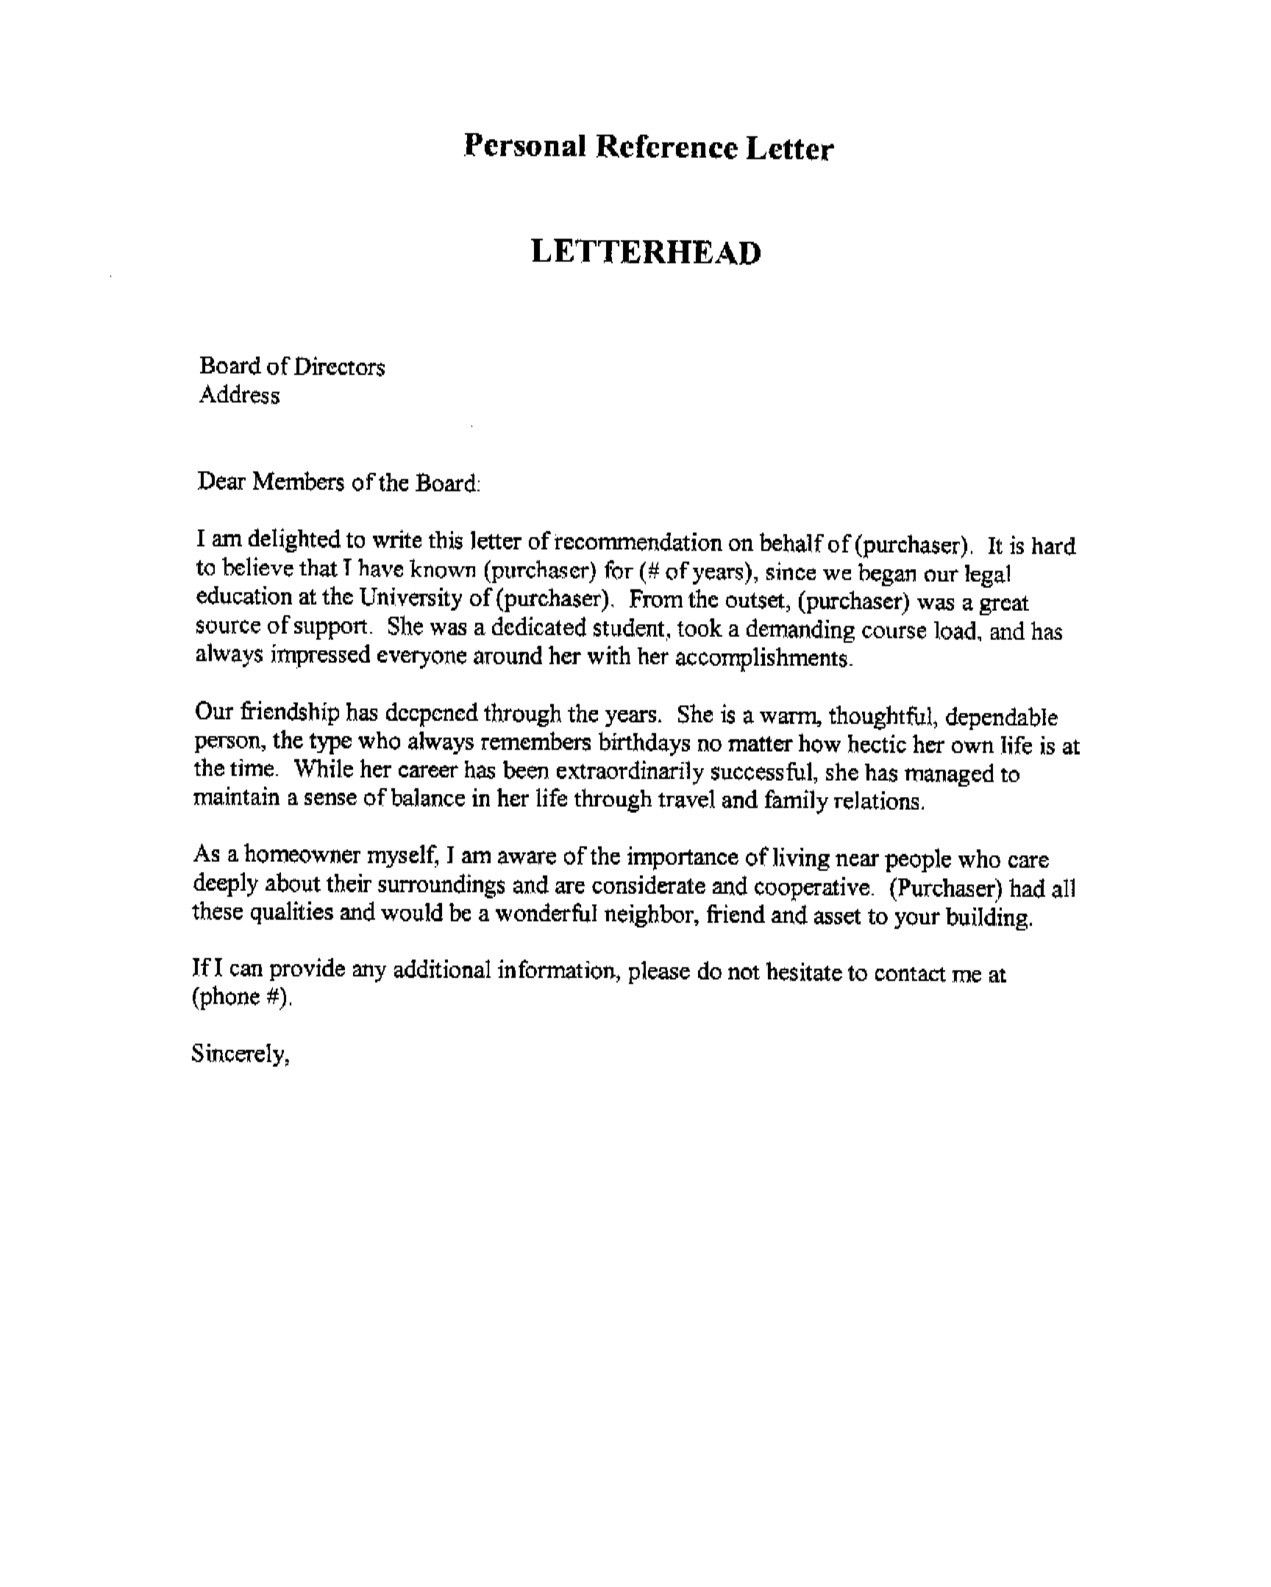 Personal Reference Letter for A Friend Template - Examples Job Reference Letters Refrence Job Reference Letter Re